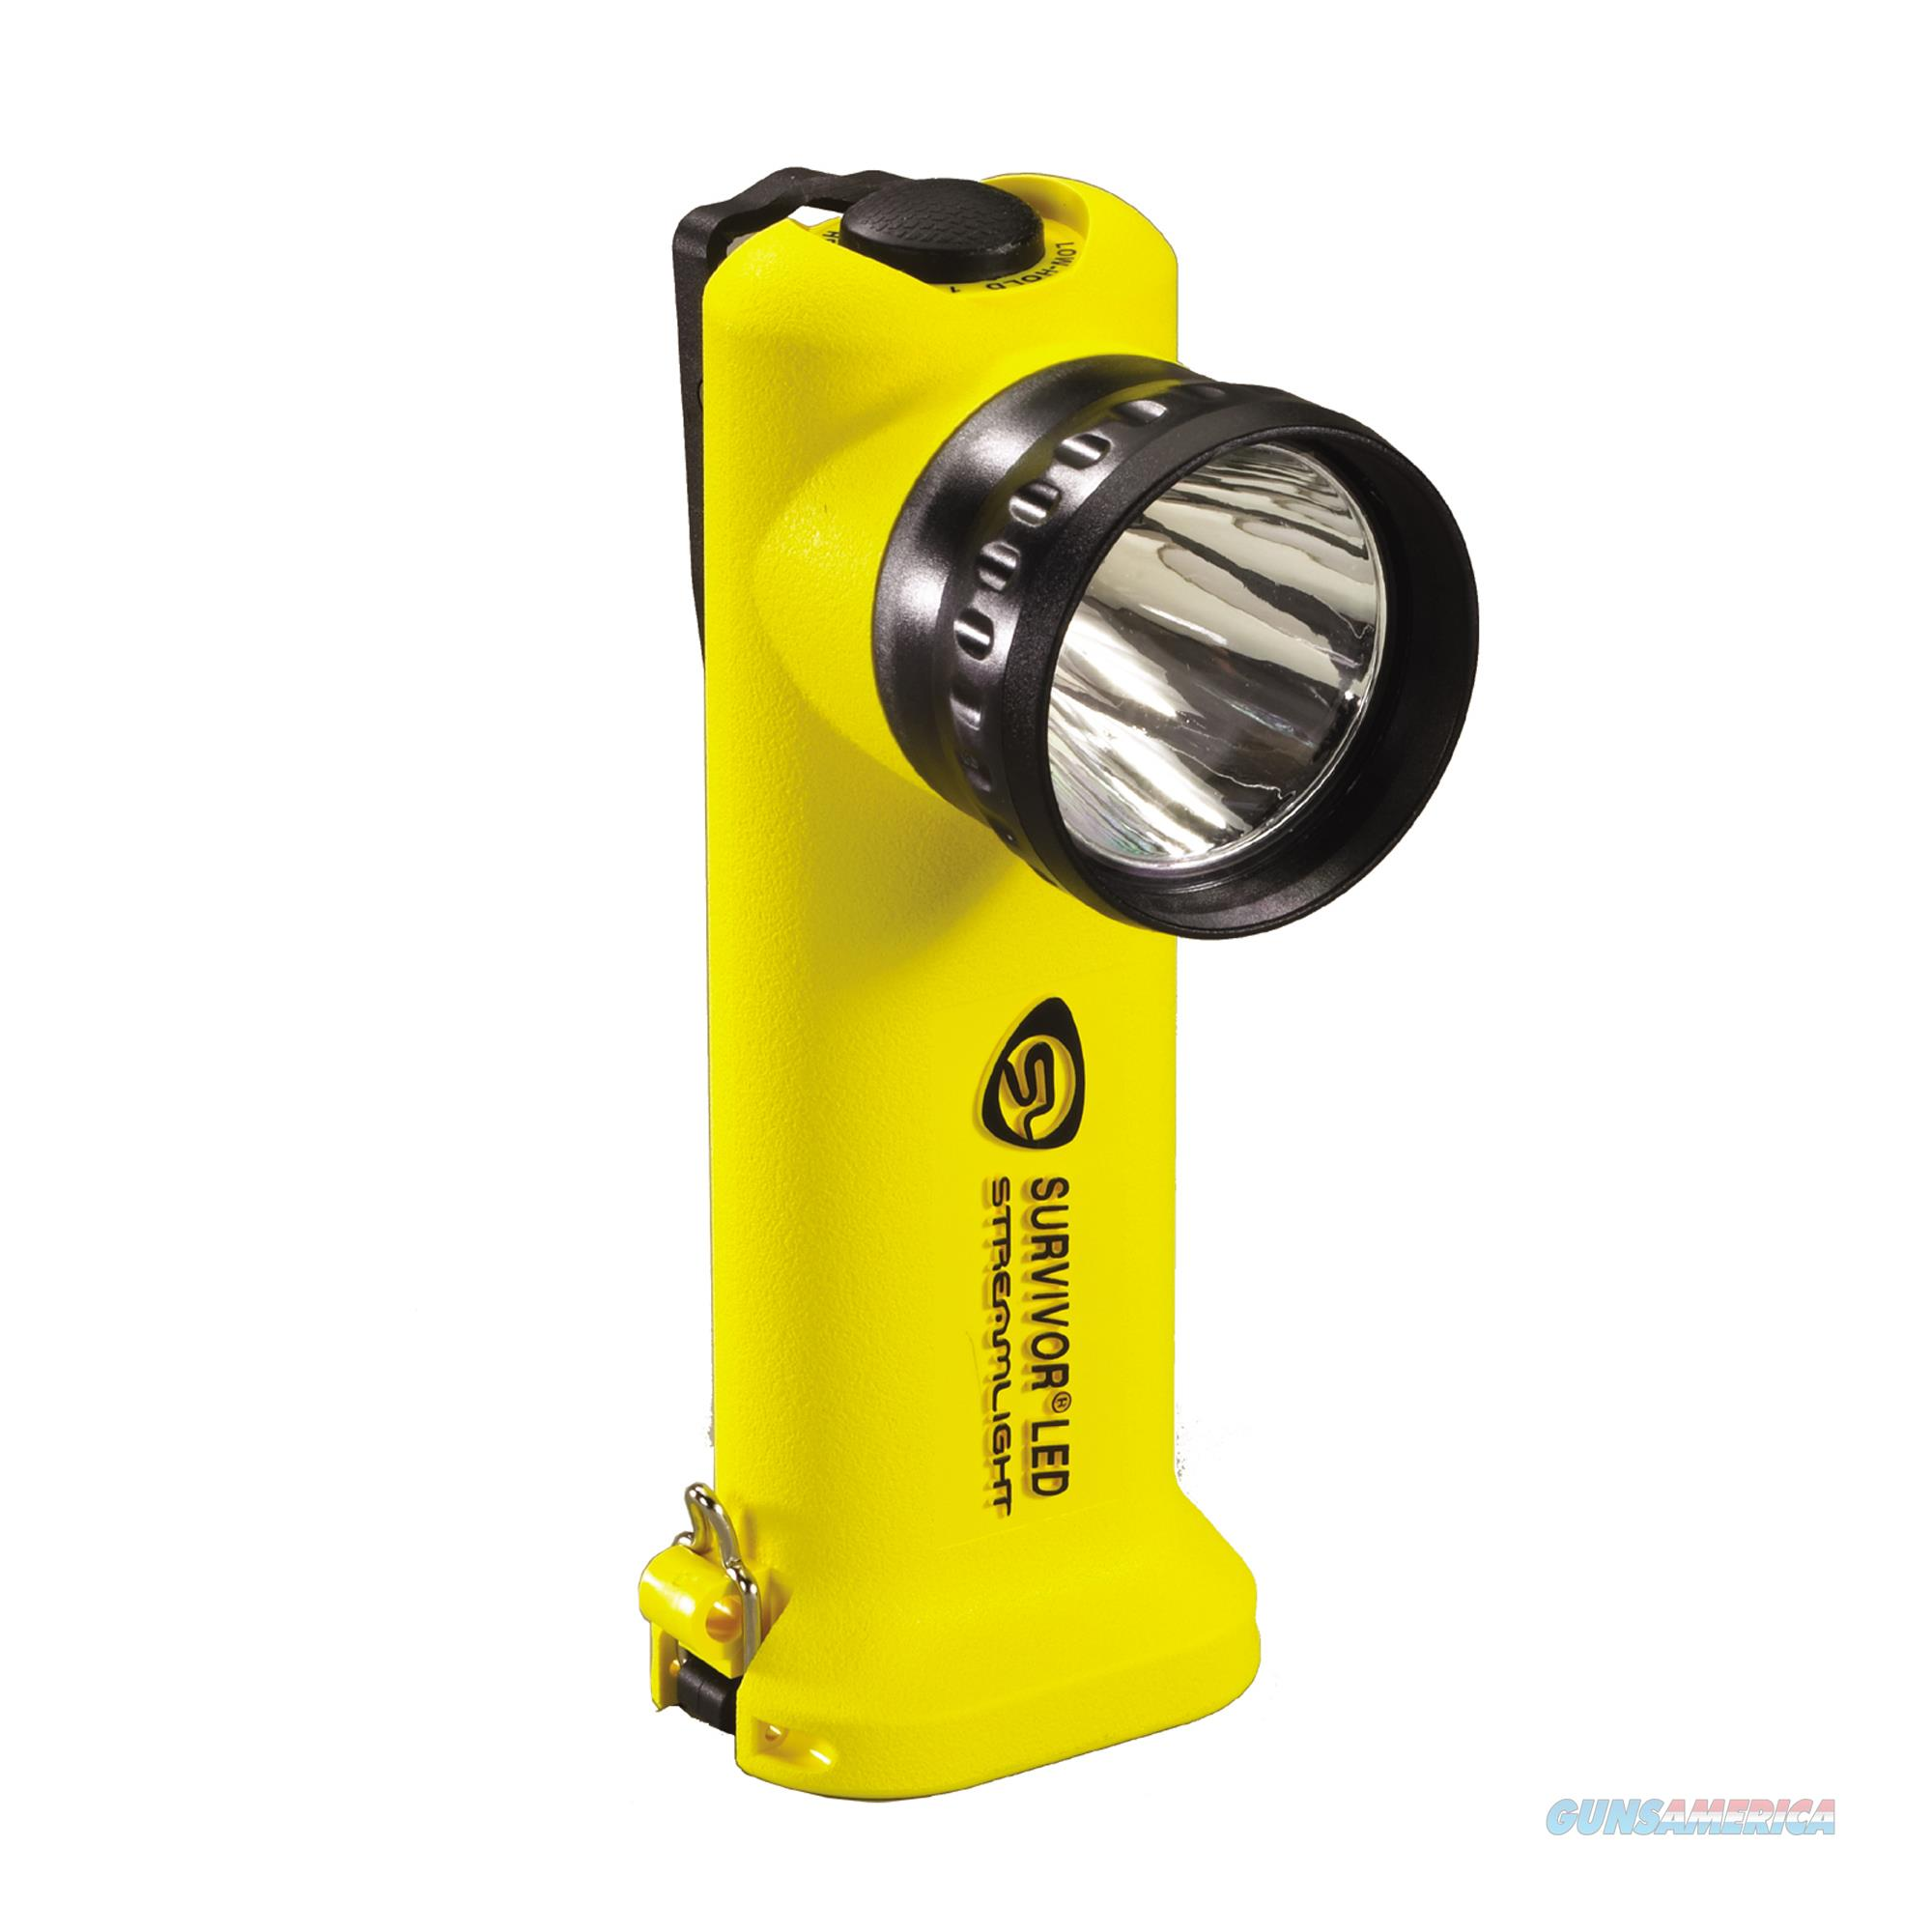 Streamlight Survivor Led 90510  Non-Guns > Tactical Equipment/Vests